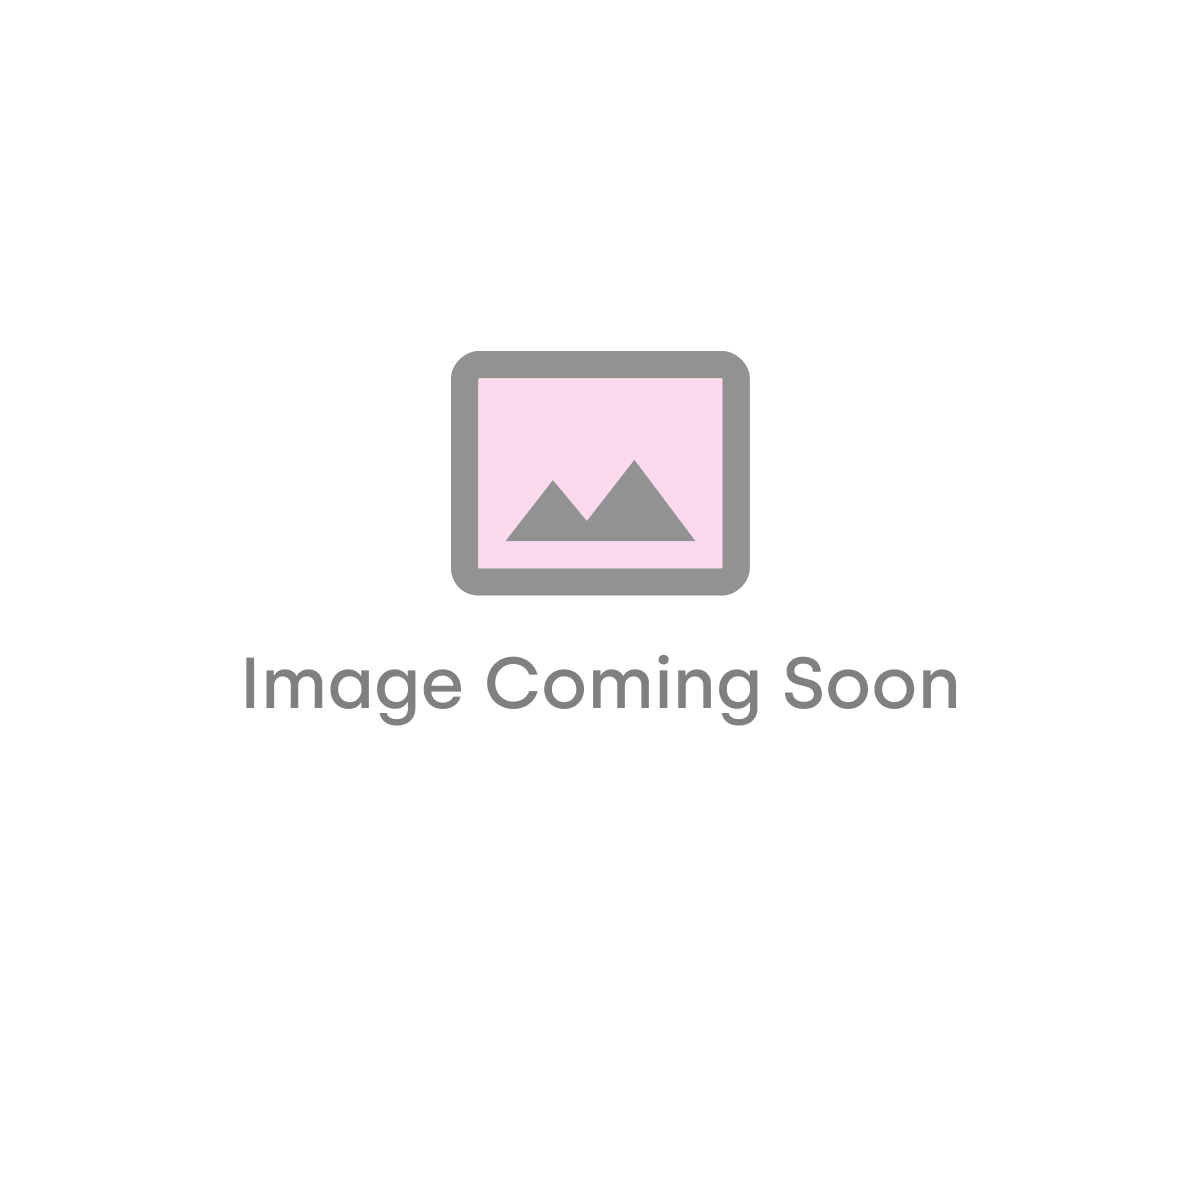 Eliseo Ricci Vertigo 1800 x 354mm Double Radiator - White (12996)